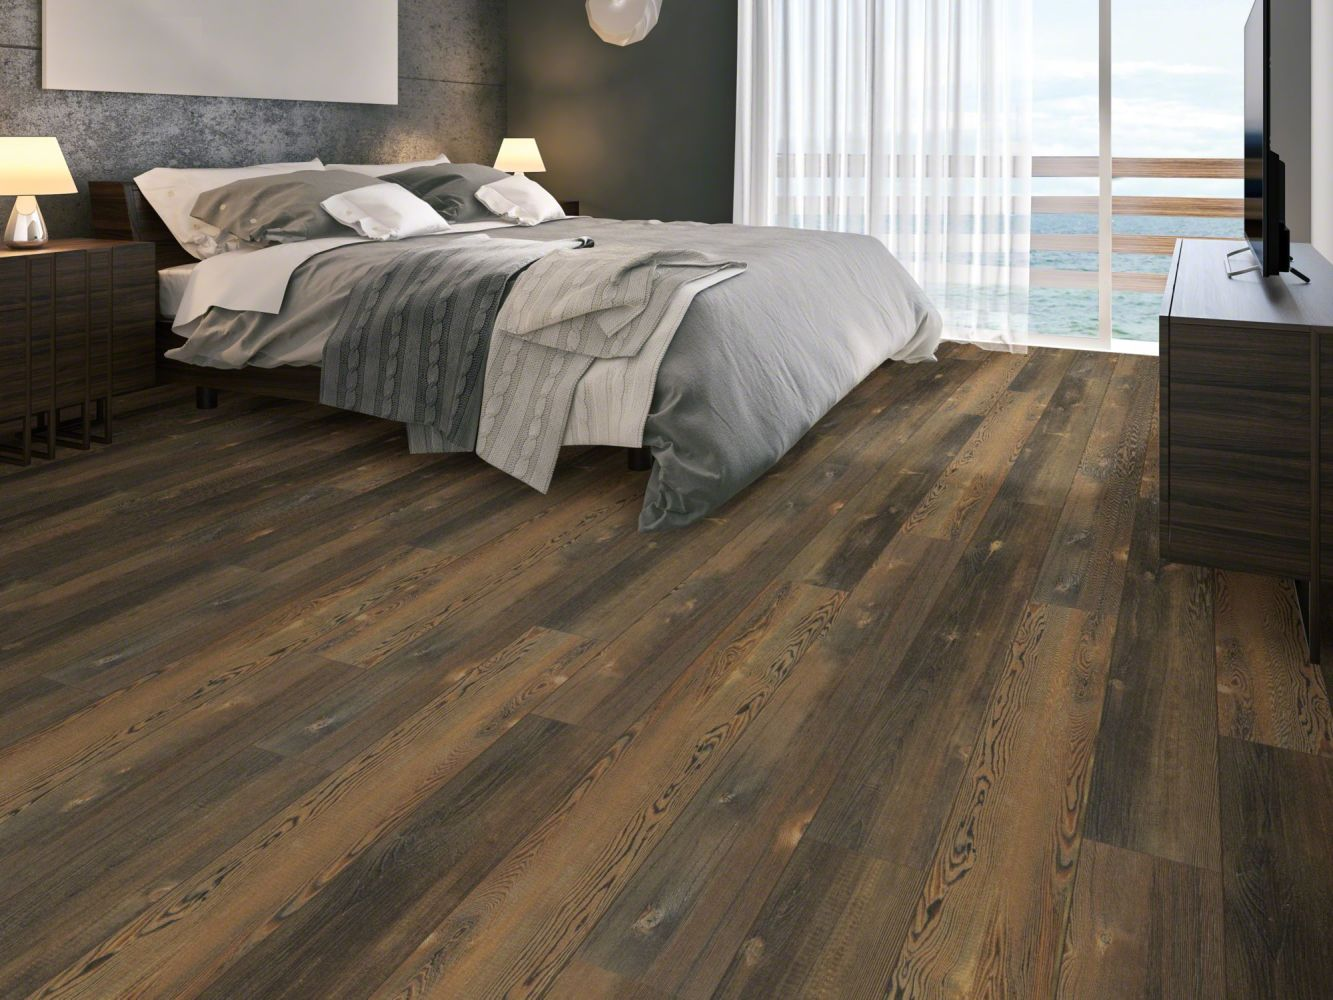 Shaw Floors Resilient Residential Blue Ridge Pine 720c HD Plus Forest Pine 00812_0864V